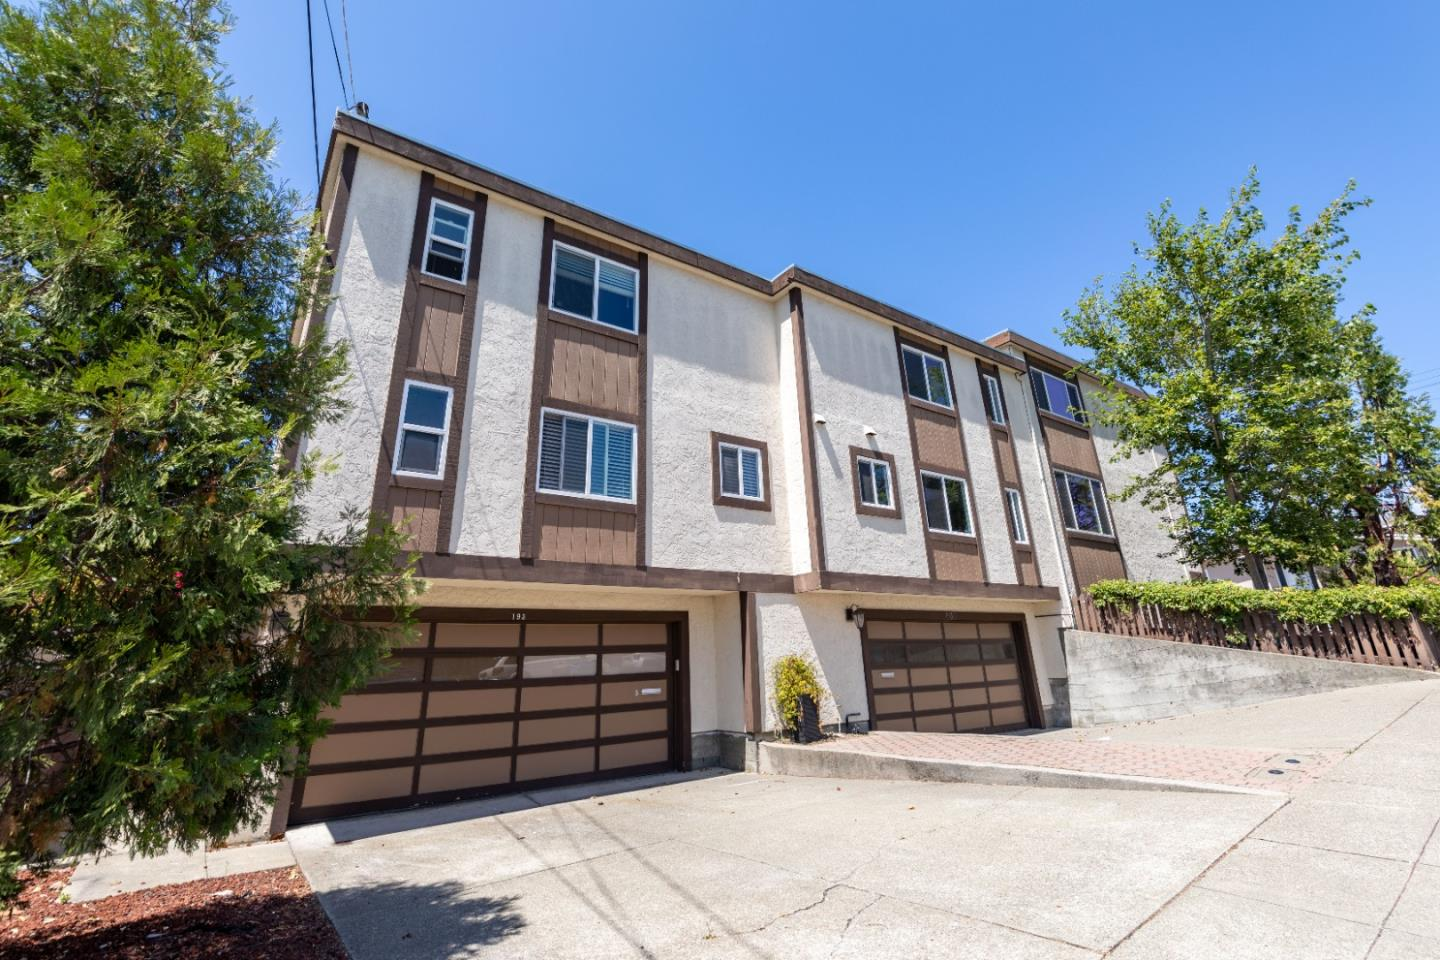 An impressive light-filled condo with a large family room complete with a fireplace and picture windows. This 2bd/2ba property is not one to miss - nearby the comforts of shopping and dining and close to I-280/101 for an easy commute to SF and Silicon Valley. On the ground floor, find a half bathroom and large, open-format living space. The updated kitchen comes equipped with stainless steel appliances and a gas range stove and flows effortlessly into the dining space, creating the perfect place for entertaining guests, friends, and family. The upper level provides privacy and quiet with large bedrooms, sizable closets, and an abundance of natural light. The bathroom features a spacious stall shower, vanity lighting, and a mirror. Fresh interior paint and attached two-car garage included.